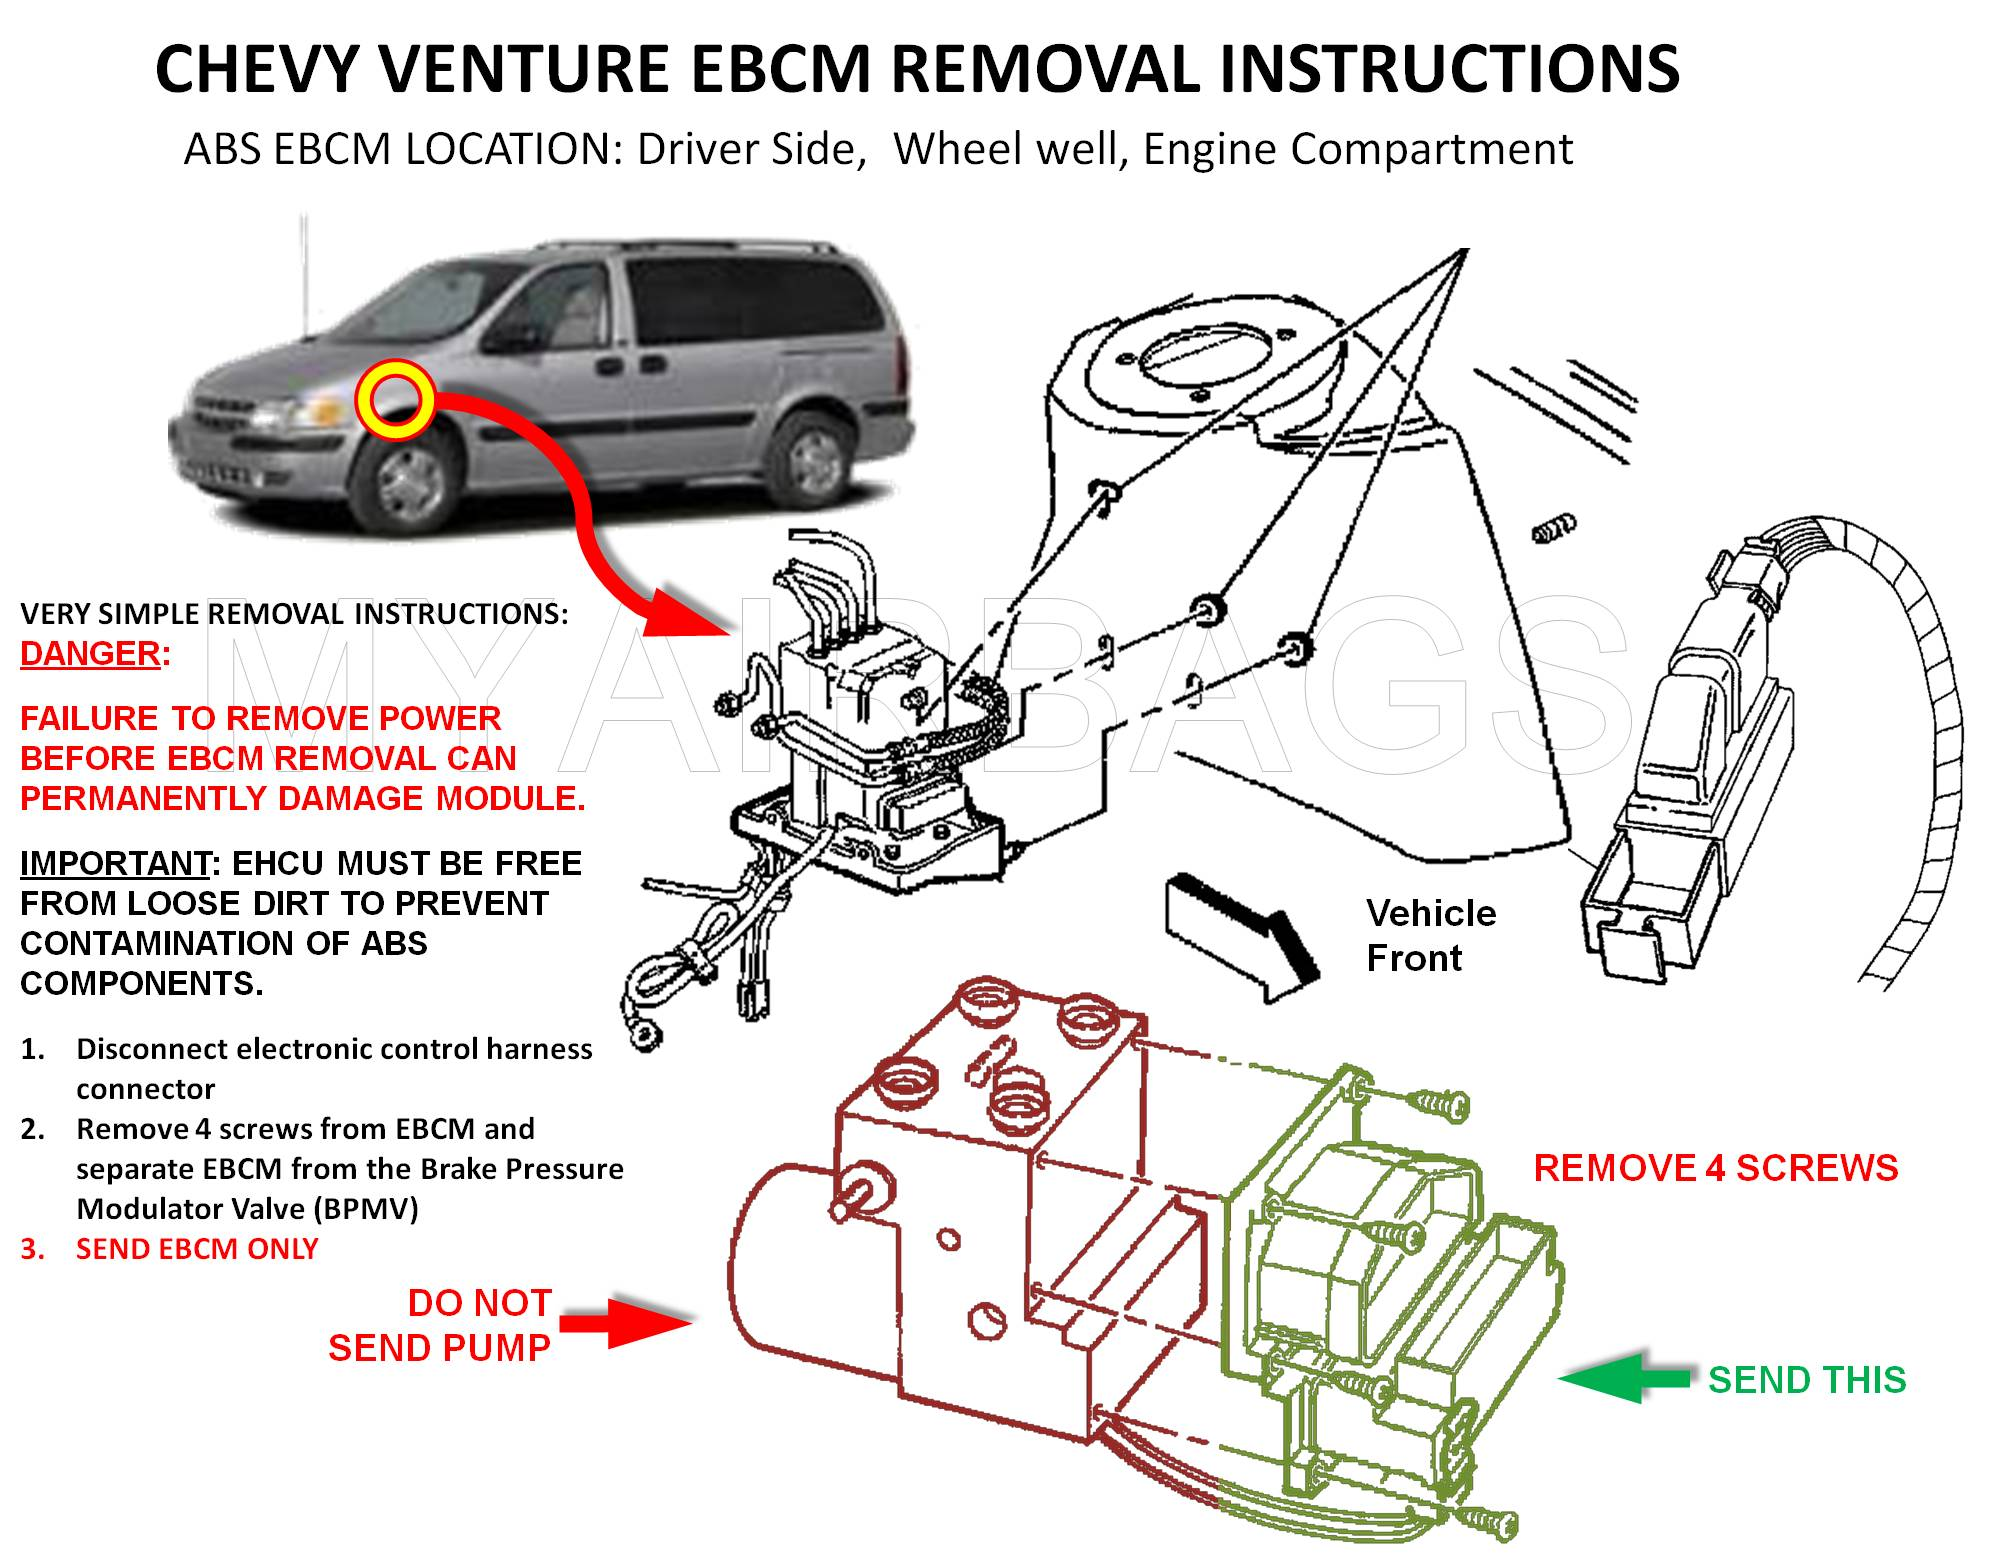 CHEVY VENTURE VAN EBCM REMOVAL INSTRUCTIONS 2003 chevy venture fuse box diagram 1967 chevy c10 fuse box where is the fuse box on a 2004 chevy venture at honlapkeszites.co